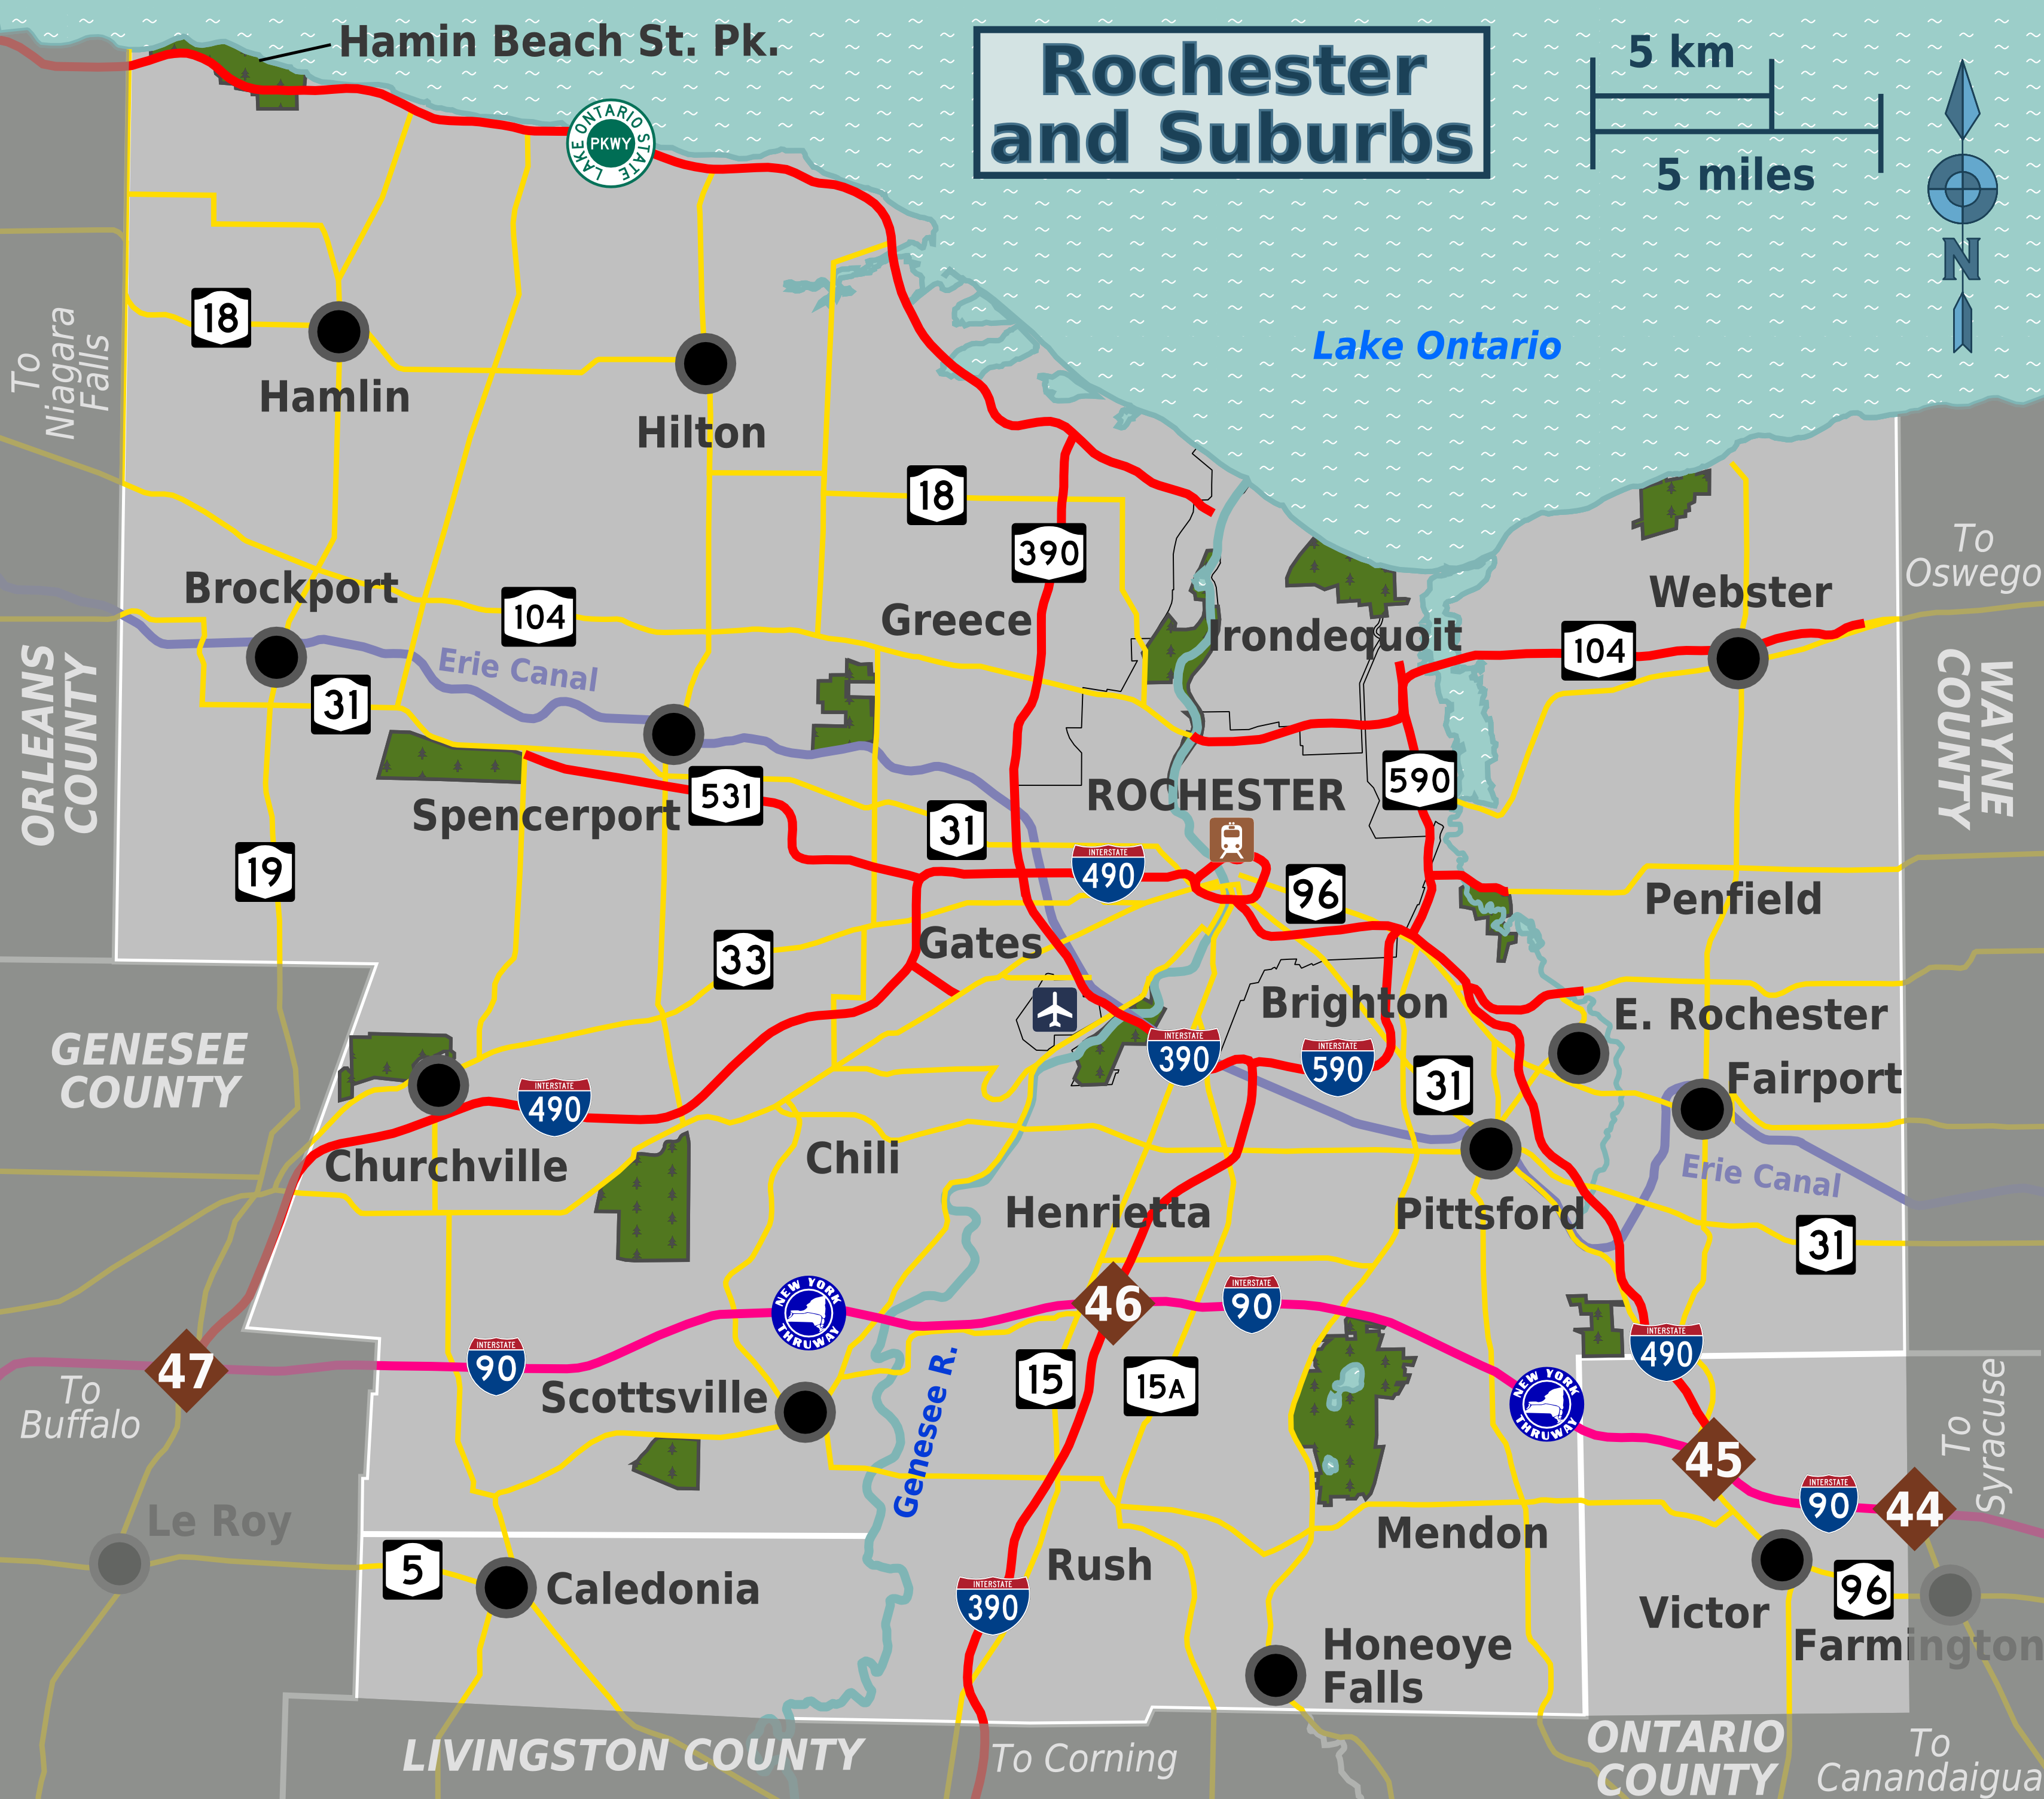 Map of Rochester neighborhoods